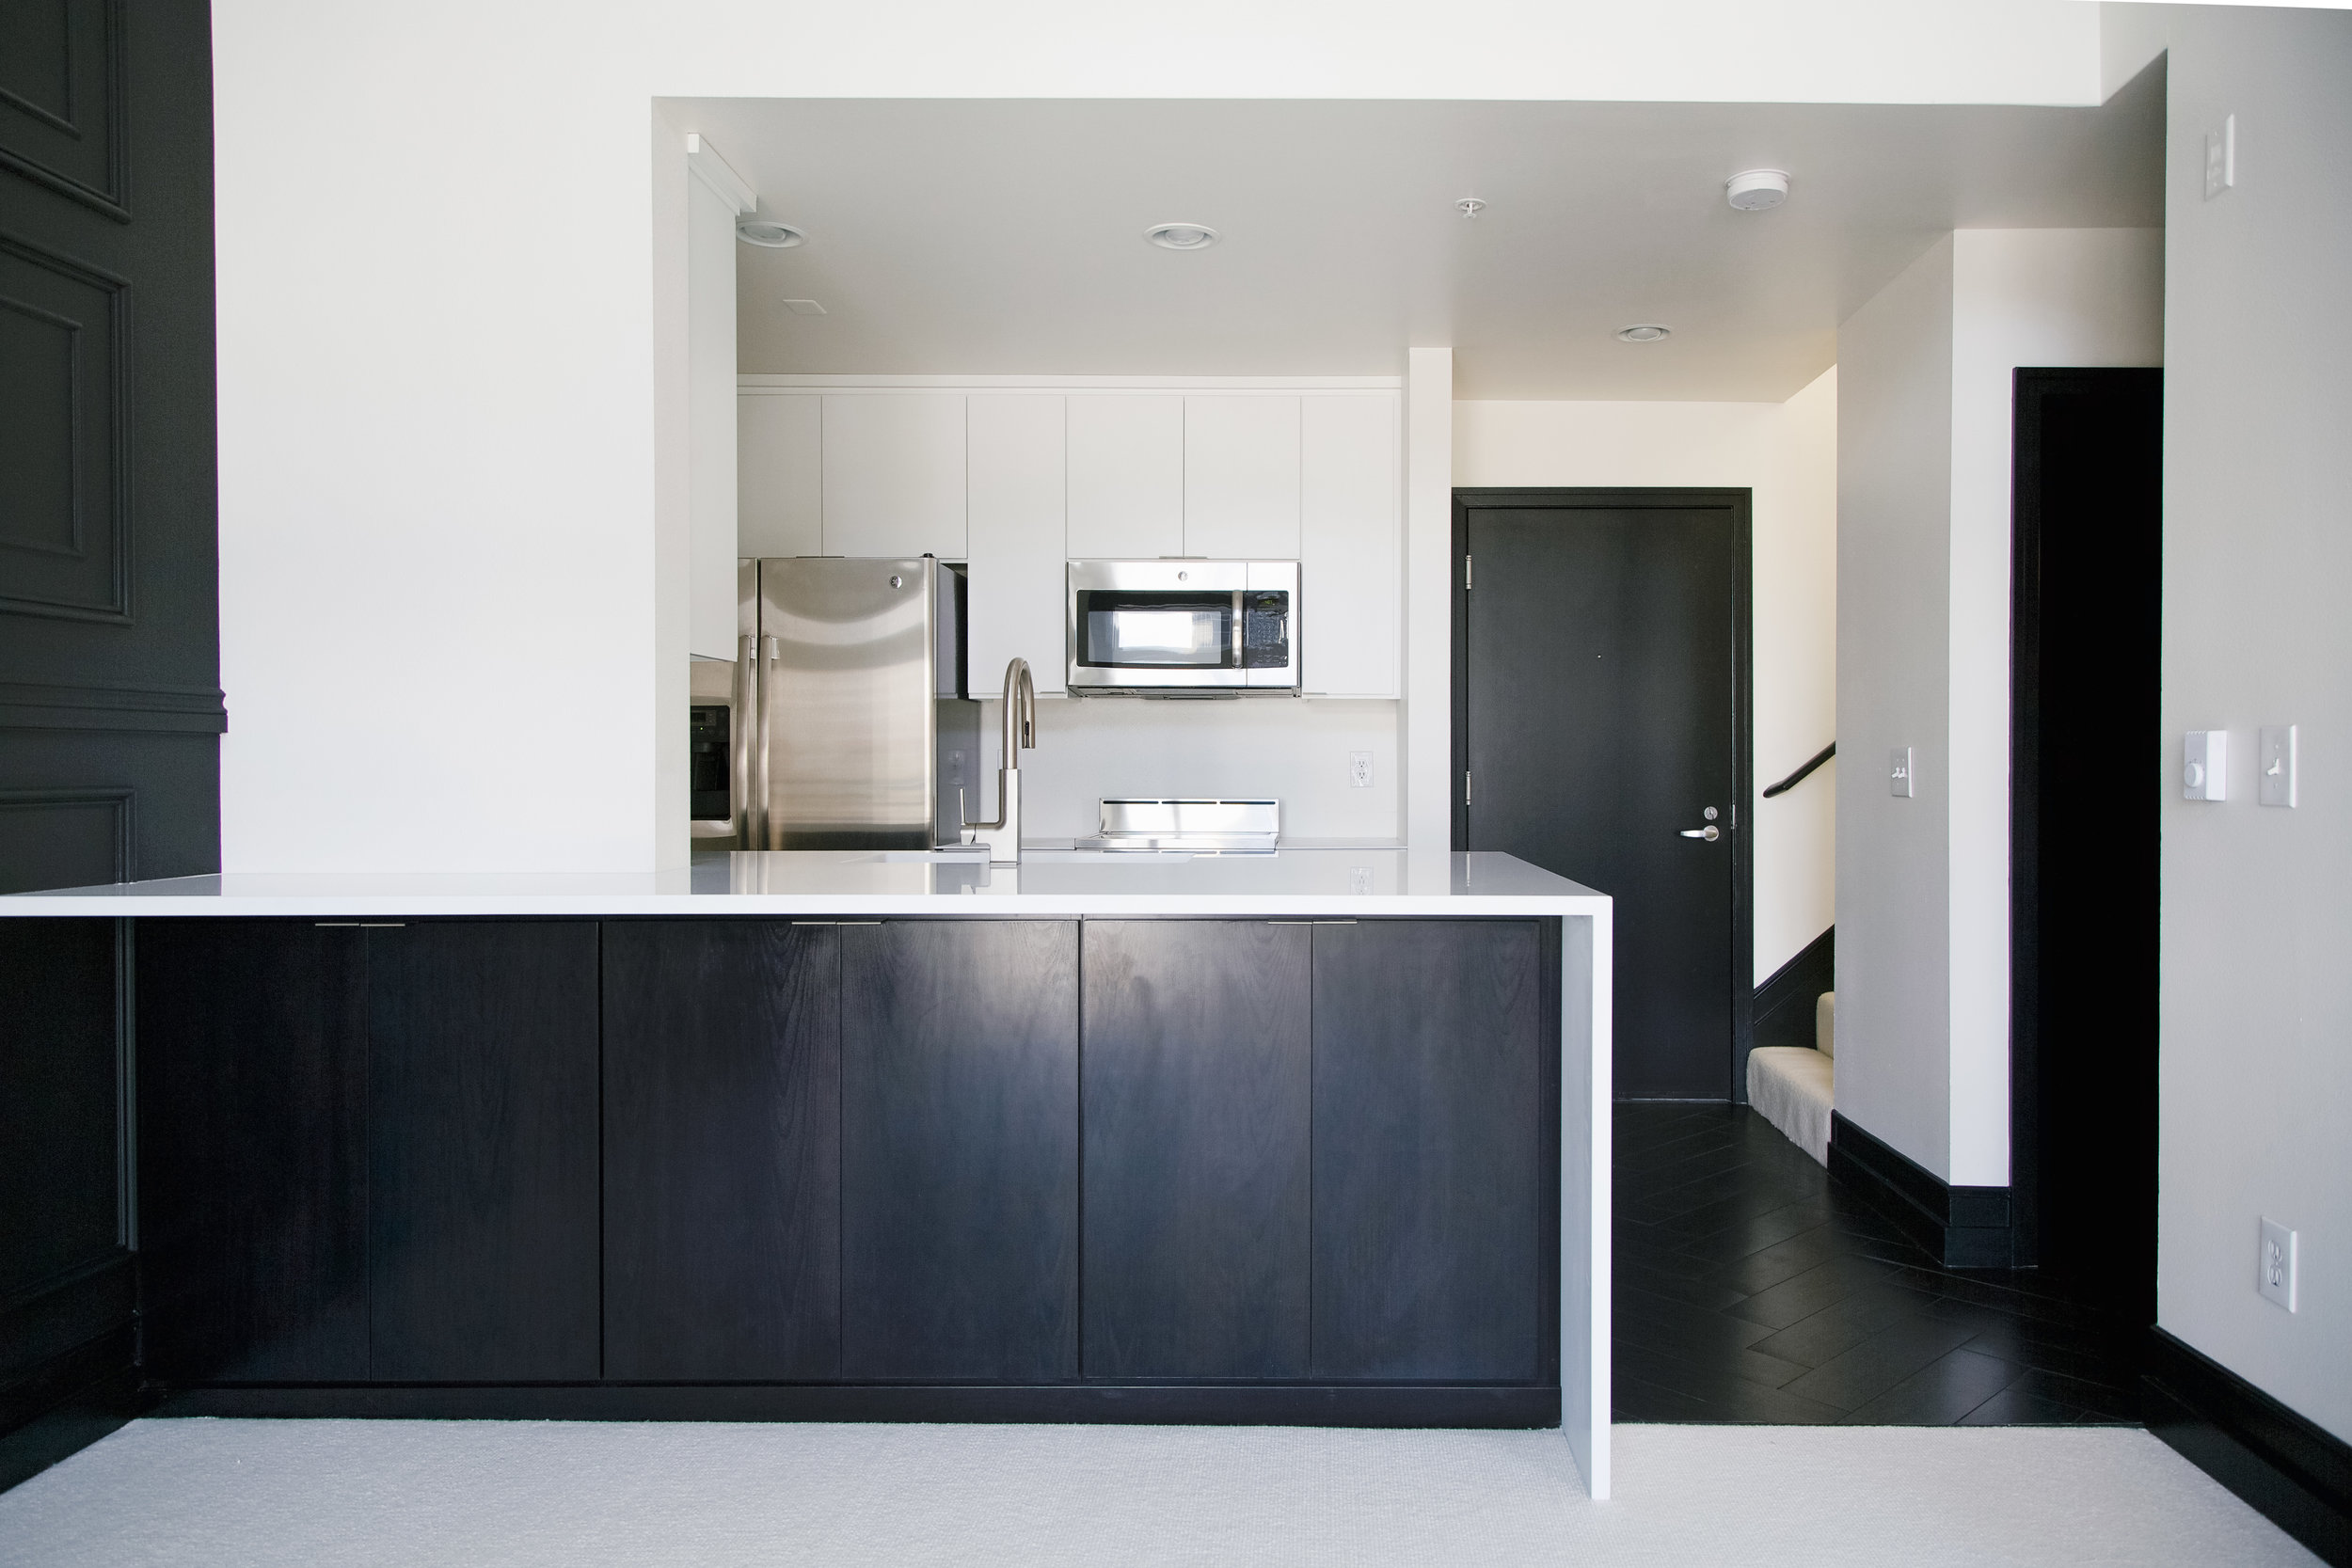 Black and white cabinetry in a modern kitchen with clean lines.